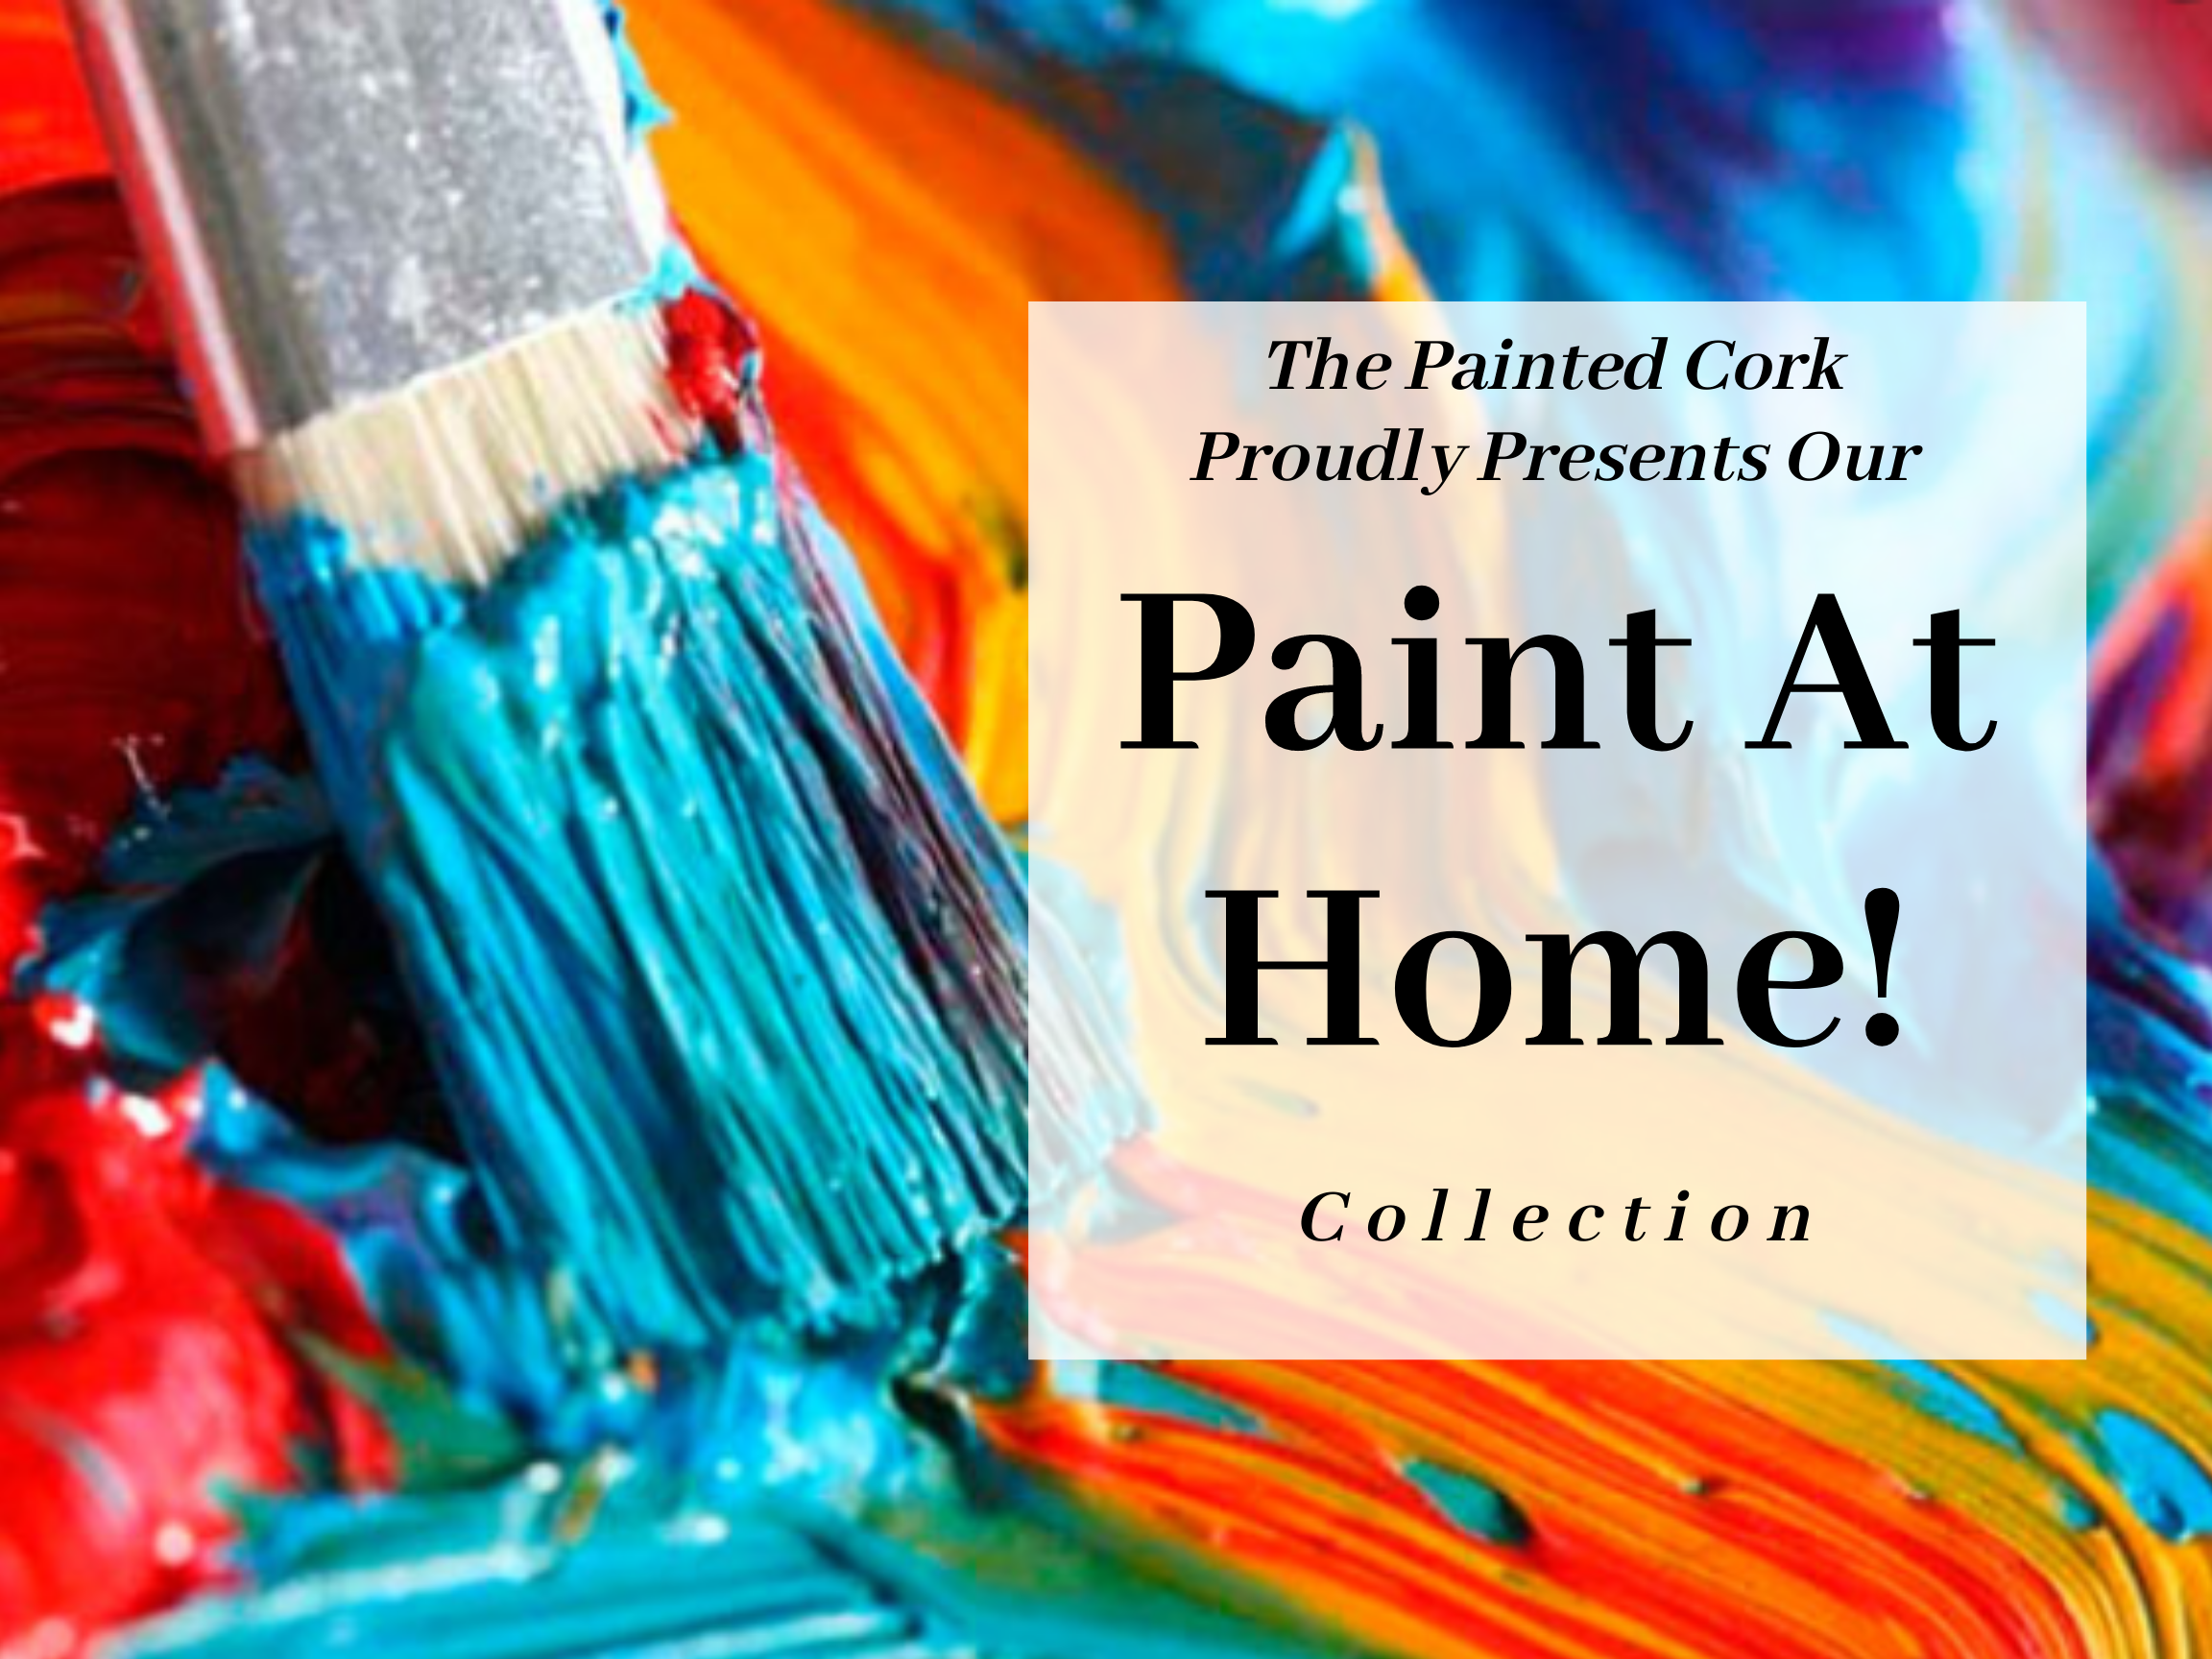 The Painted Cork Presents Our Paint at Home Collection!